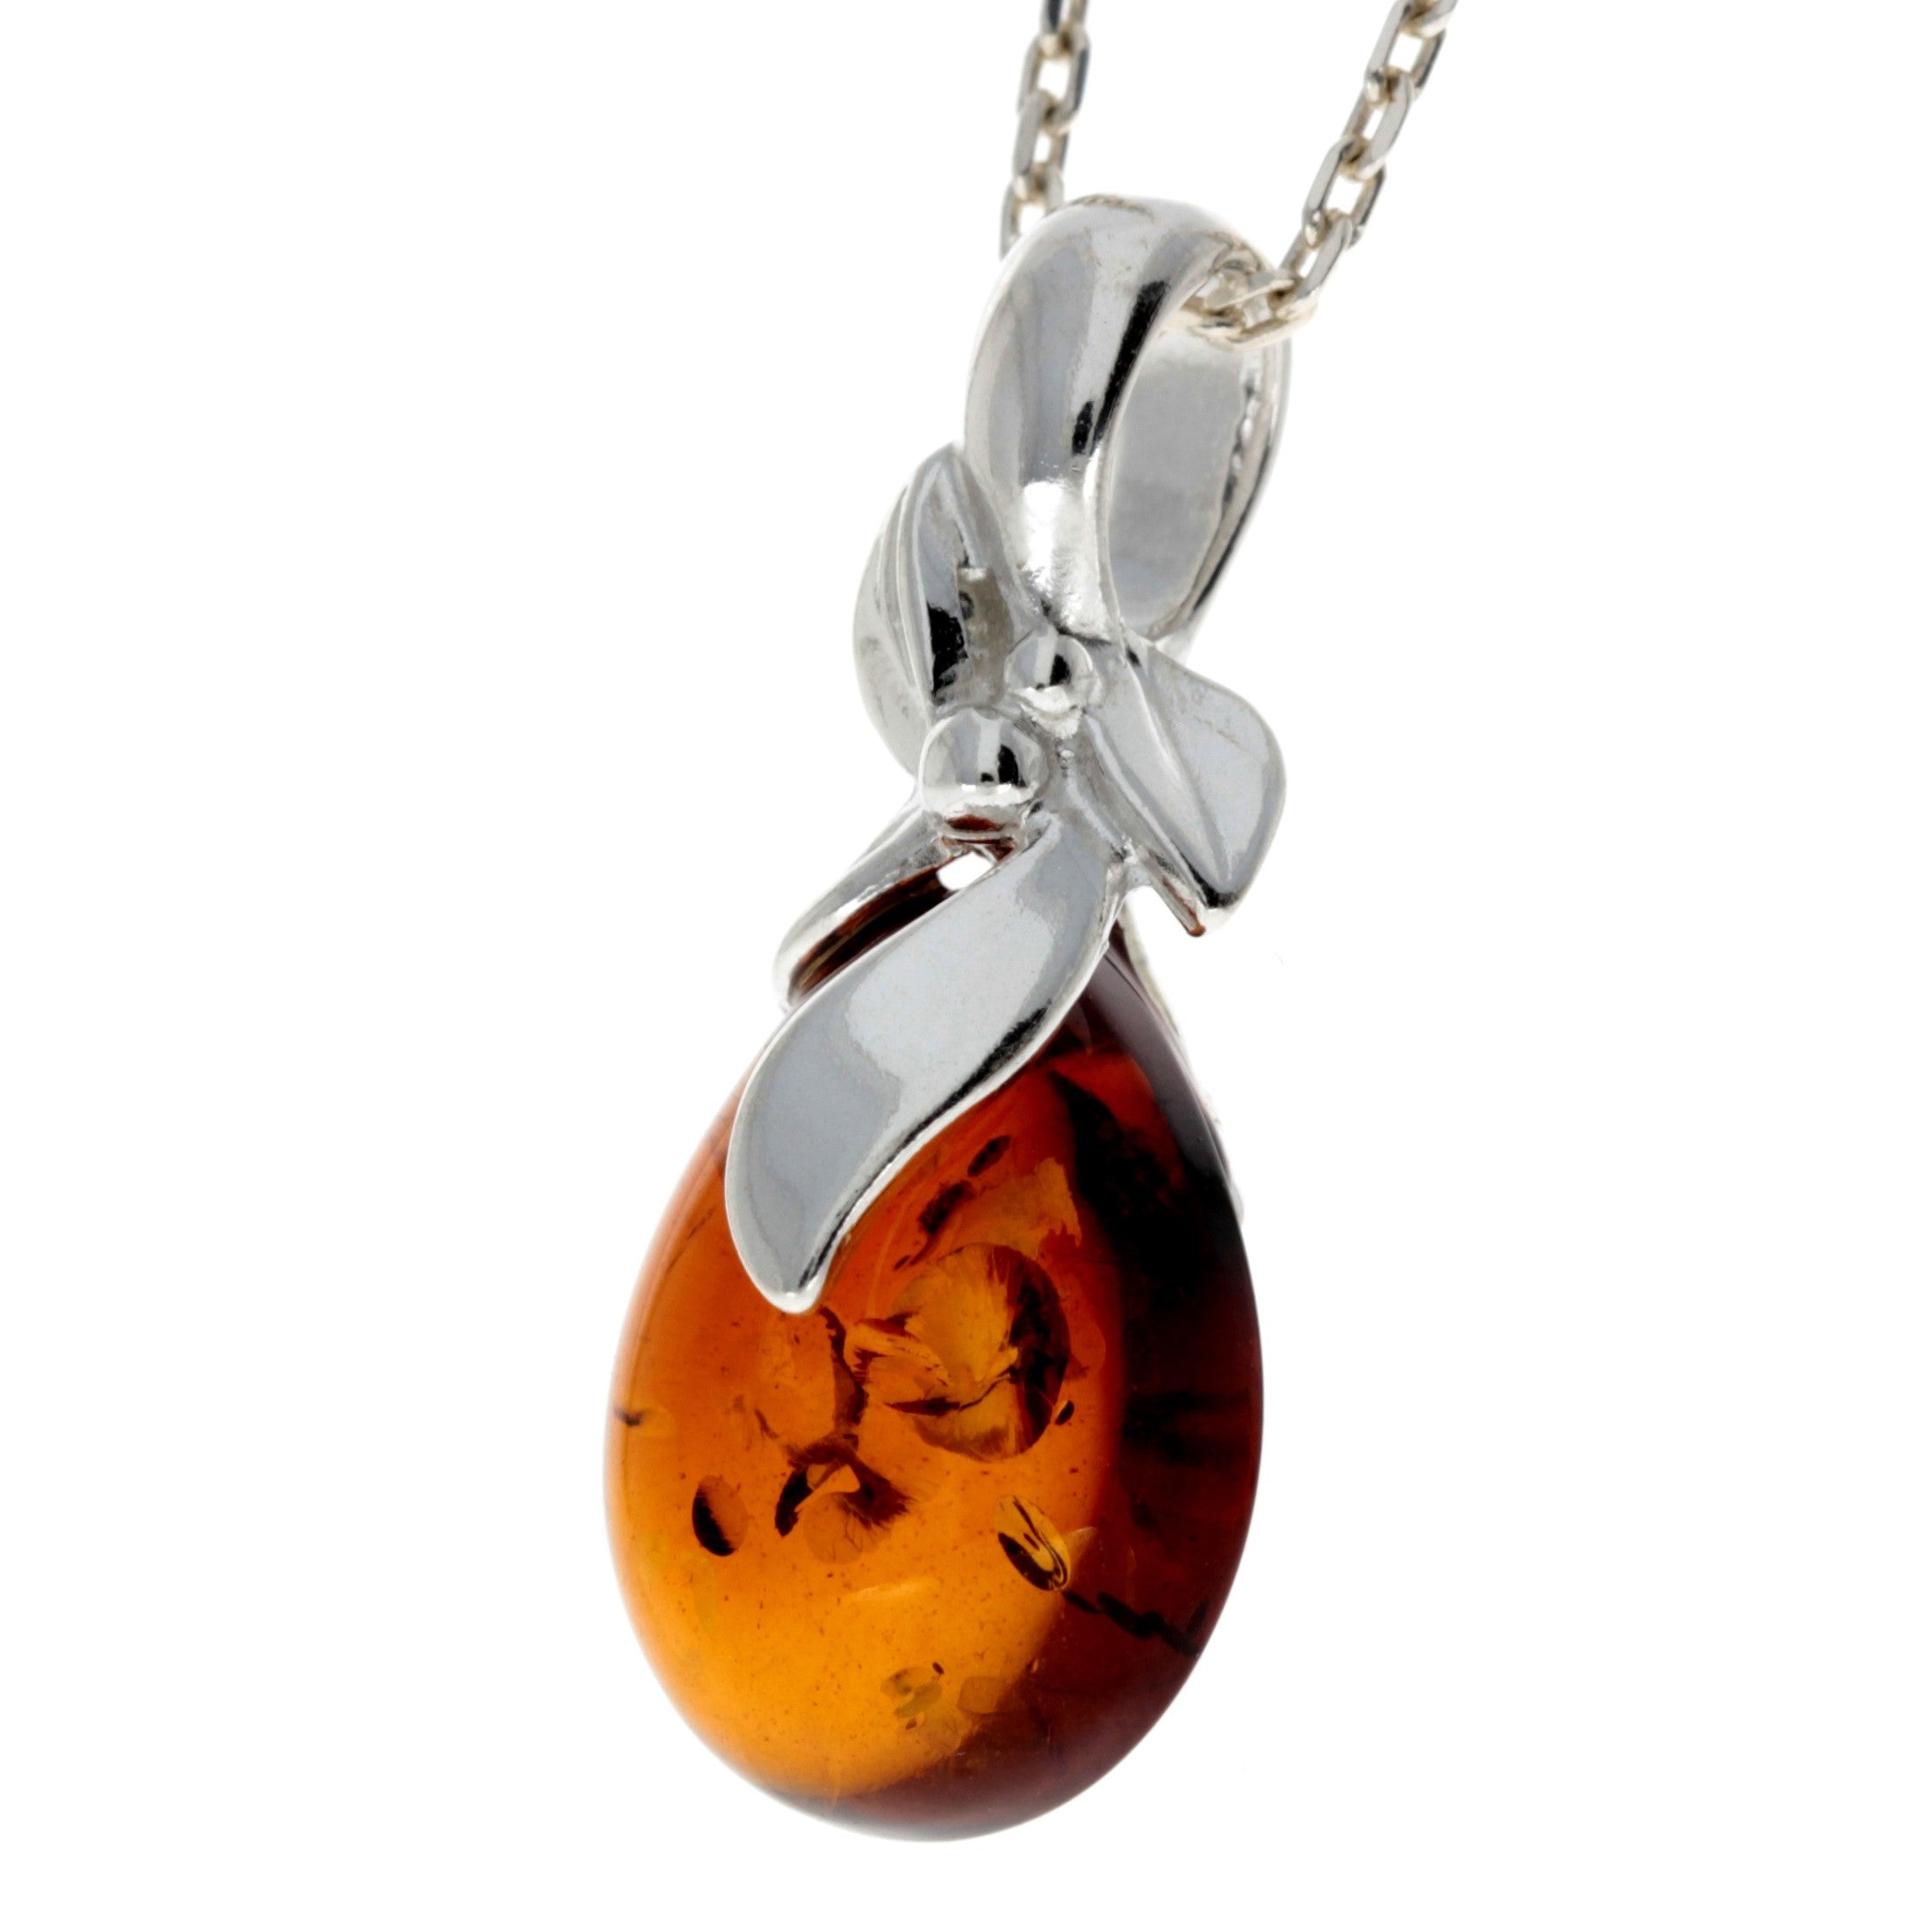 925 Sterling Silver & Baltic Amber Teardrop Classic Pendant - 1637